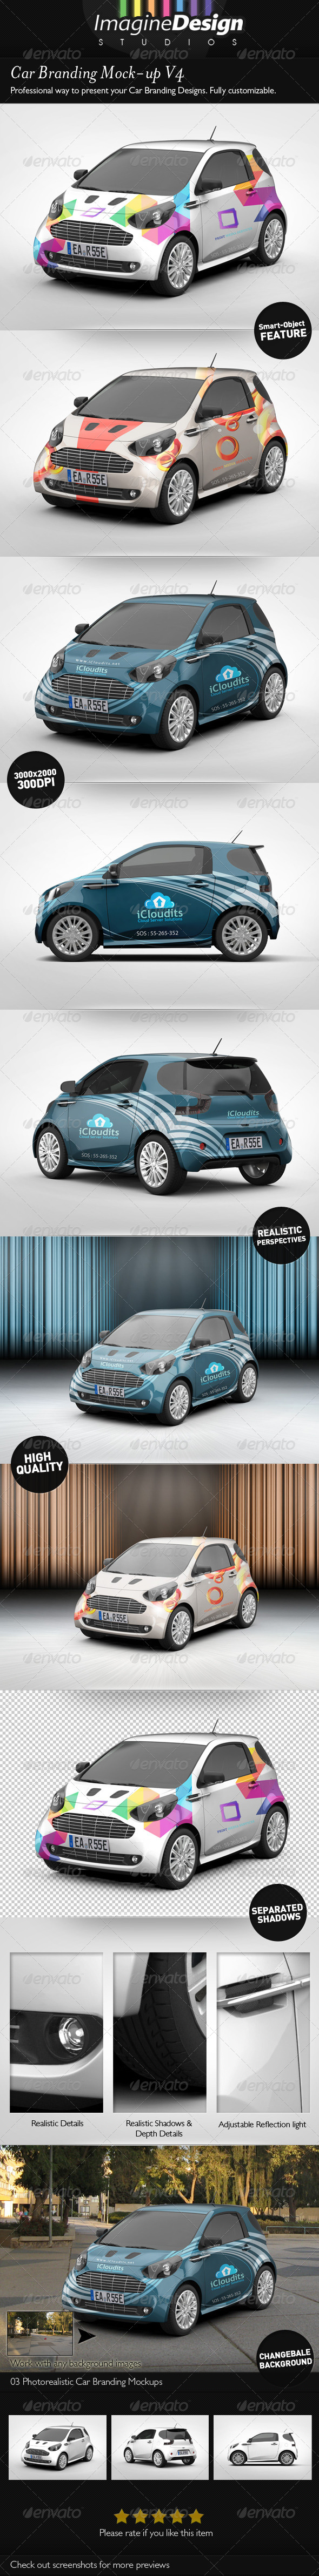 Car Branding Mock-Up V4 - Vehicle Wraps Print